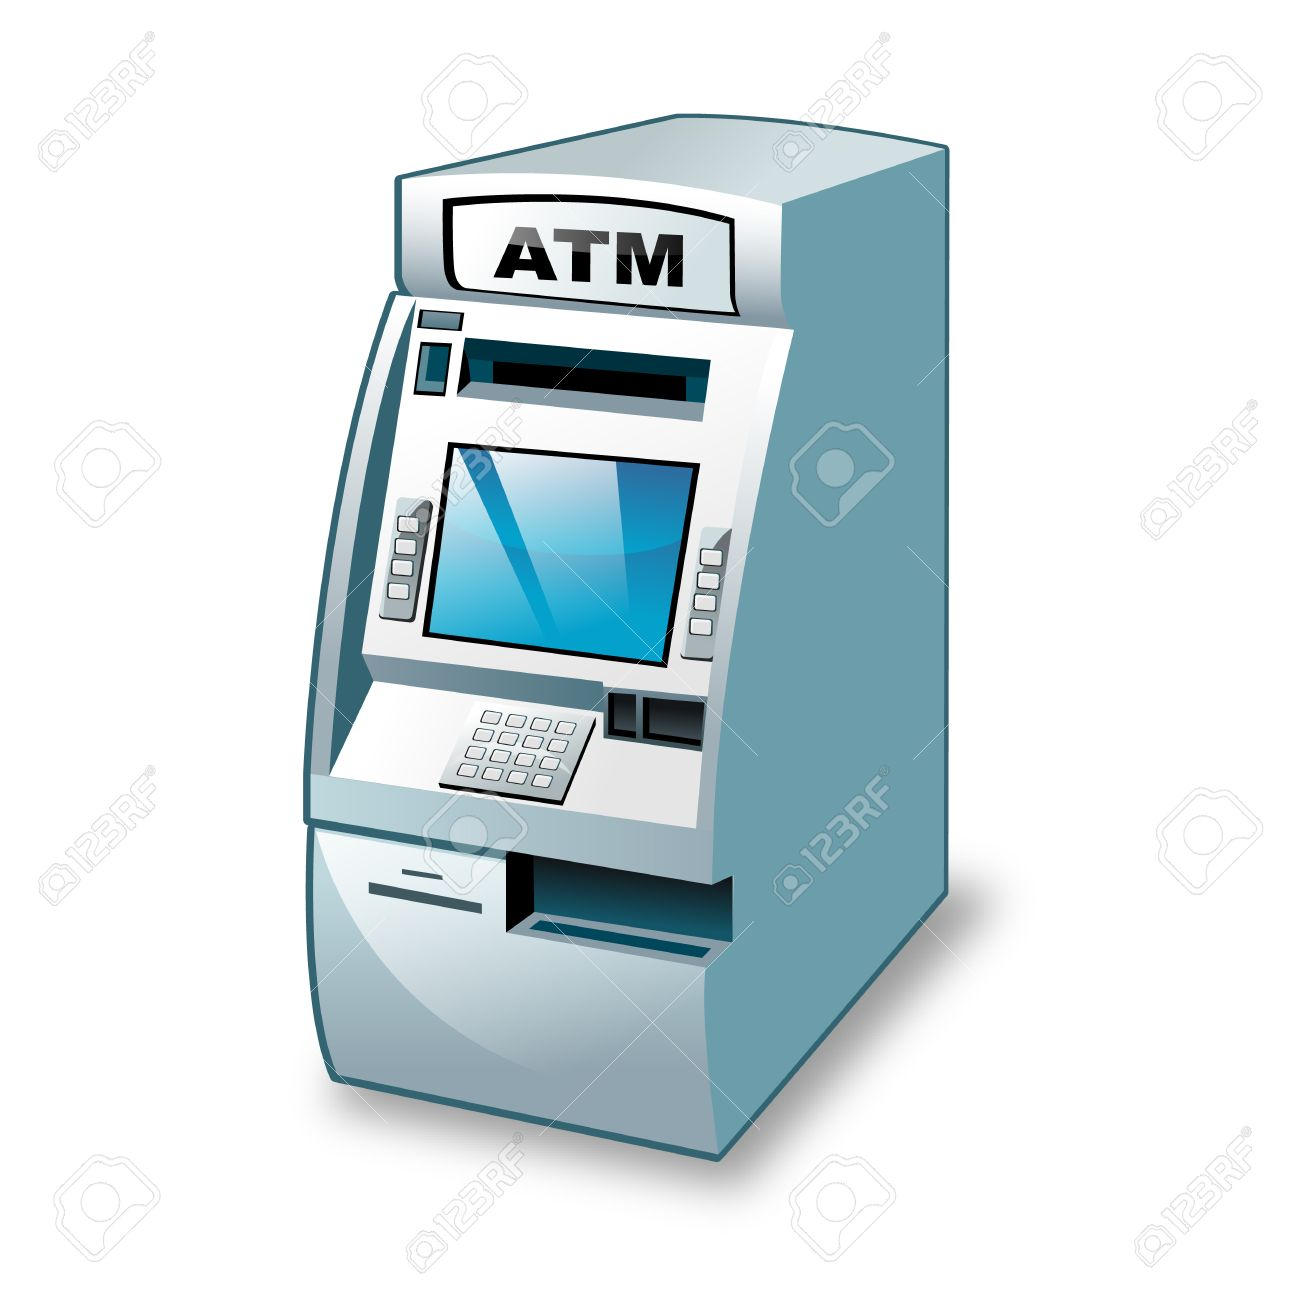 customer satisfaction regarding atm machine Asian journal of management research customer satisfaction, atm, people between various aspects of atms regarding their level of satisfaction.